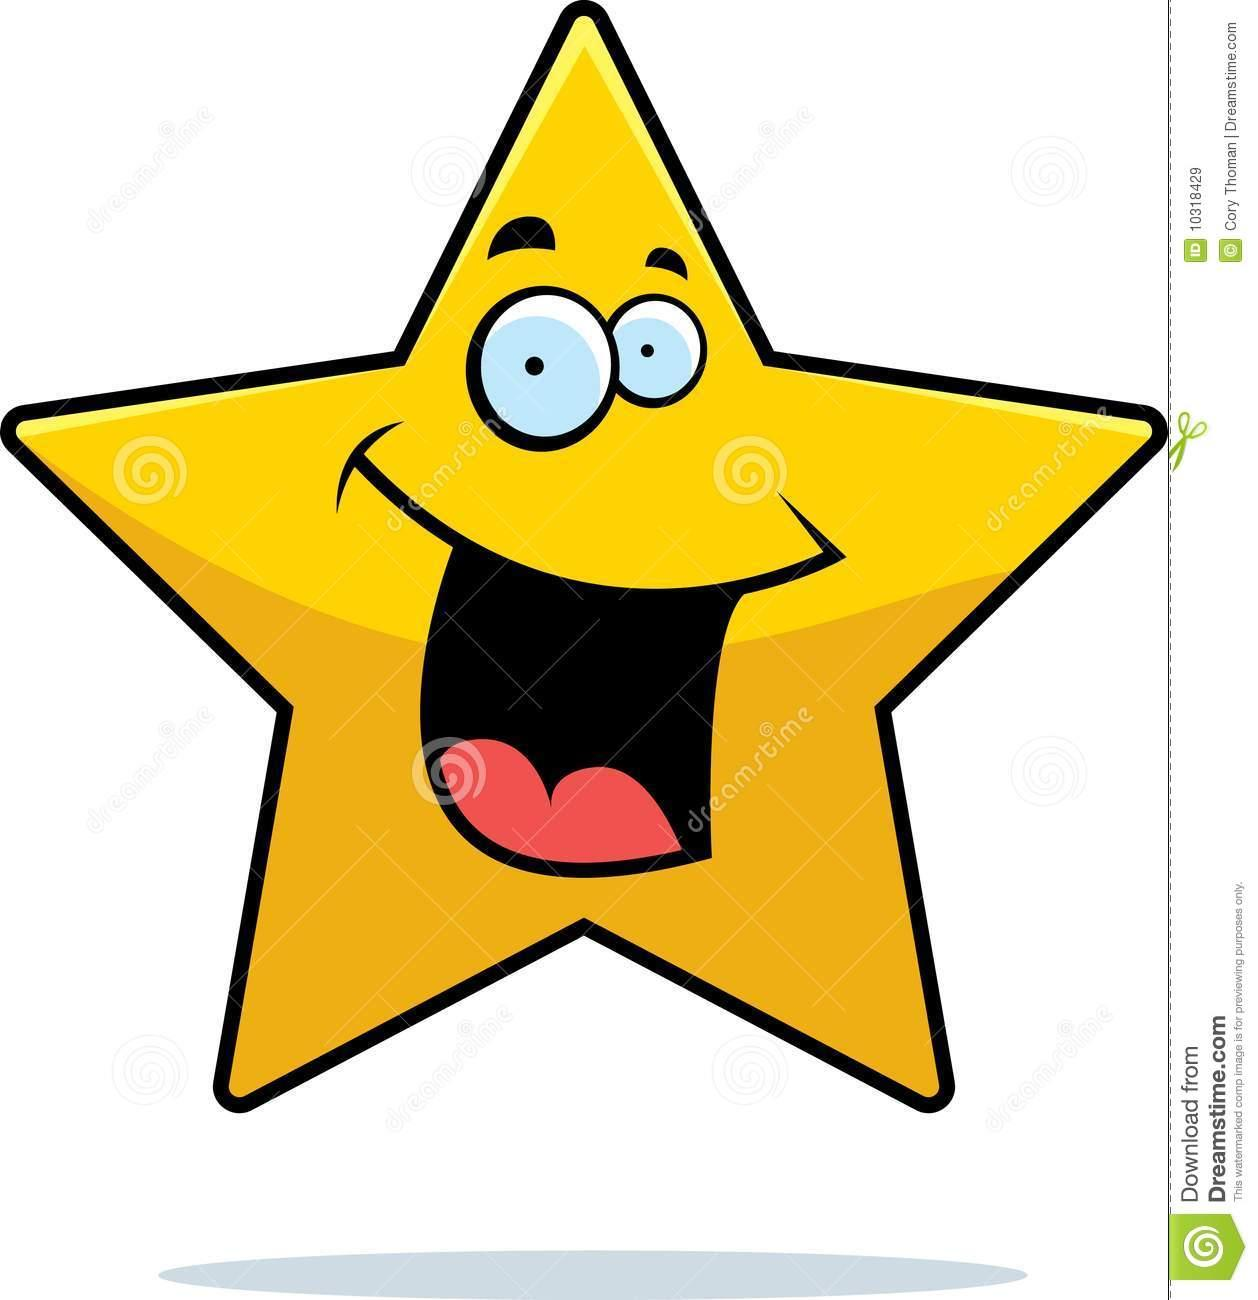 Shape clipart animated. Star at getdrawings com